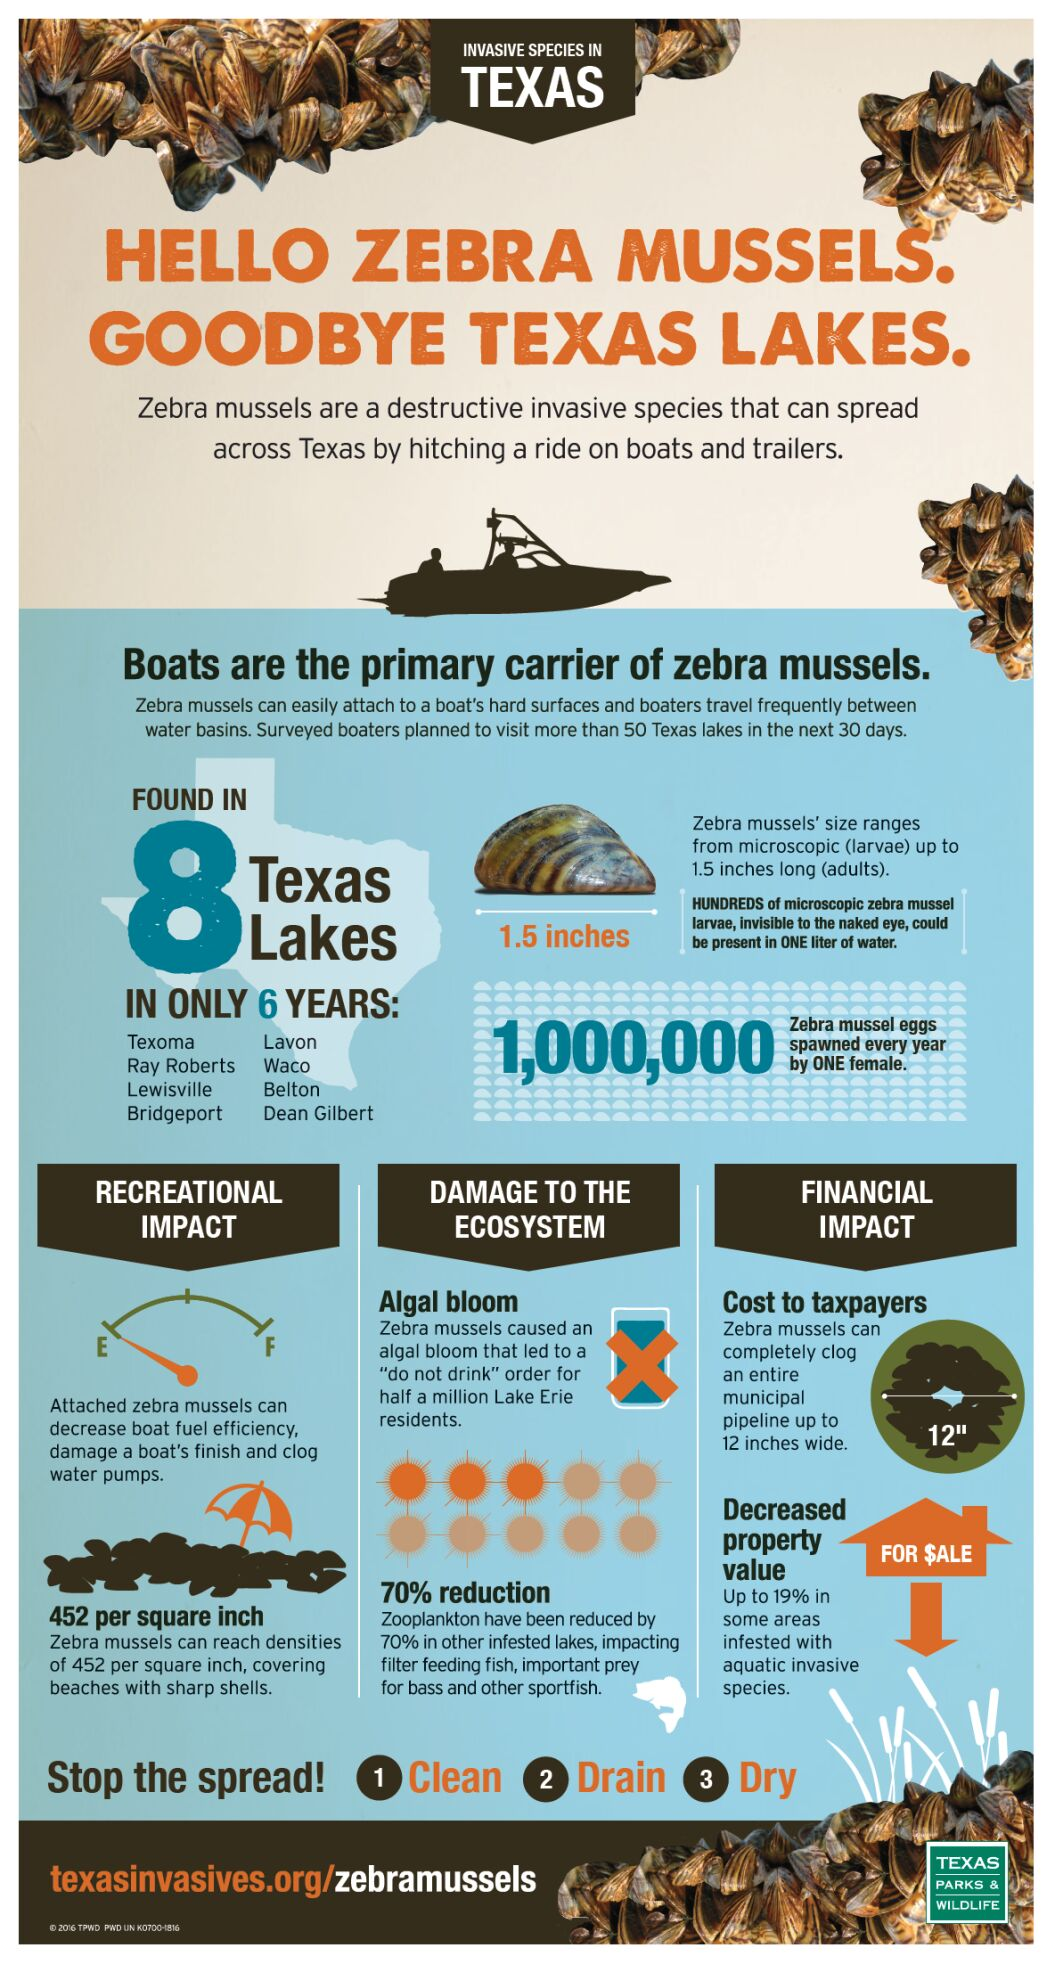 10-24-20 TPWD Zebra Mussels infograph.png